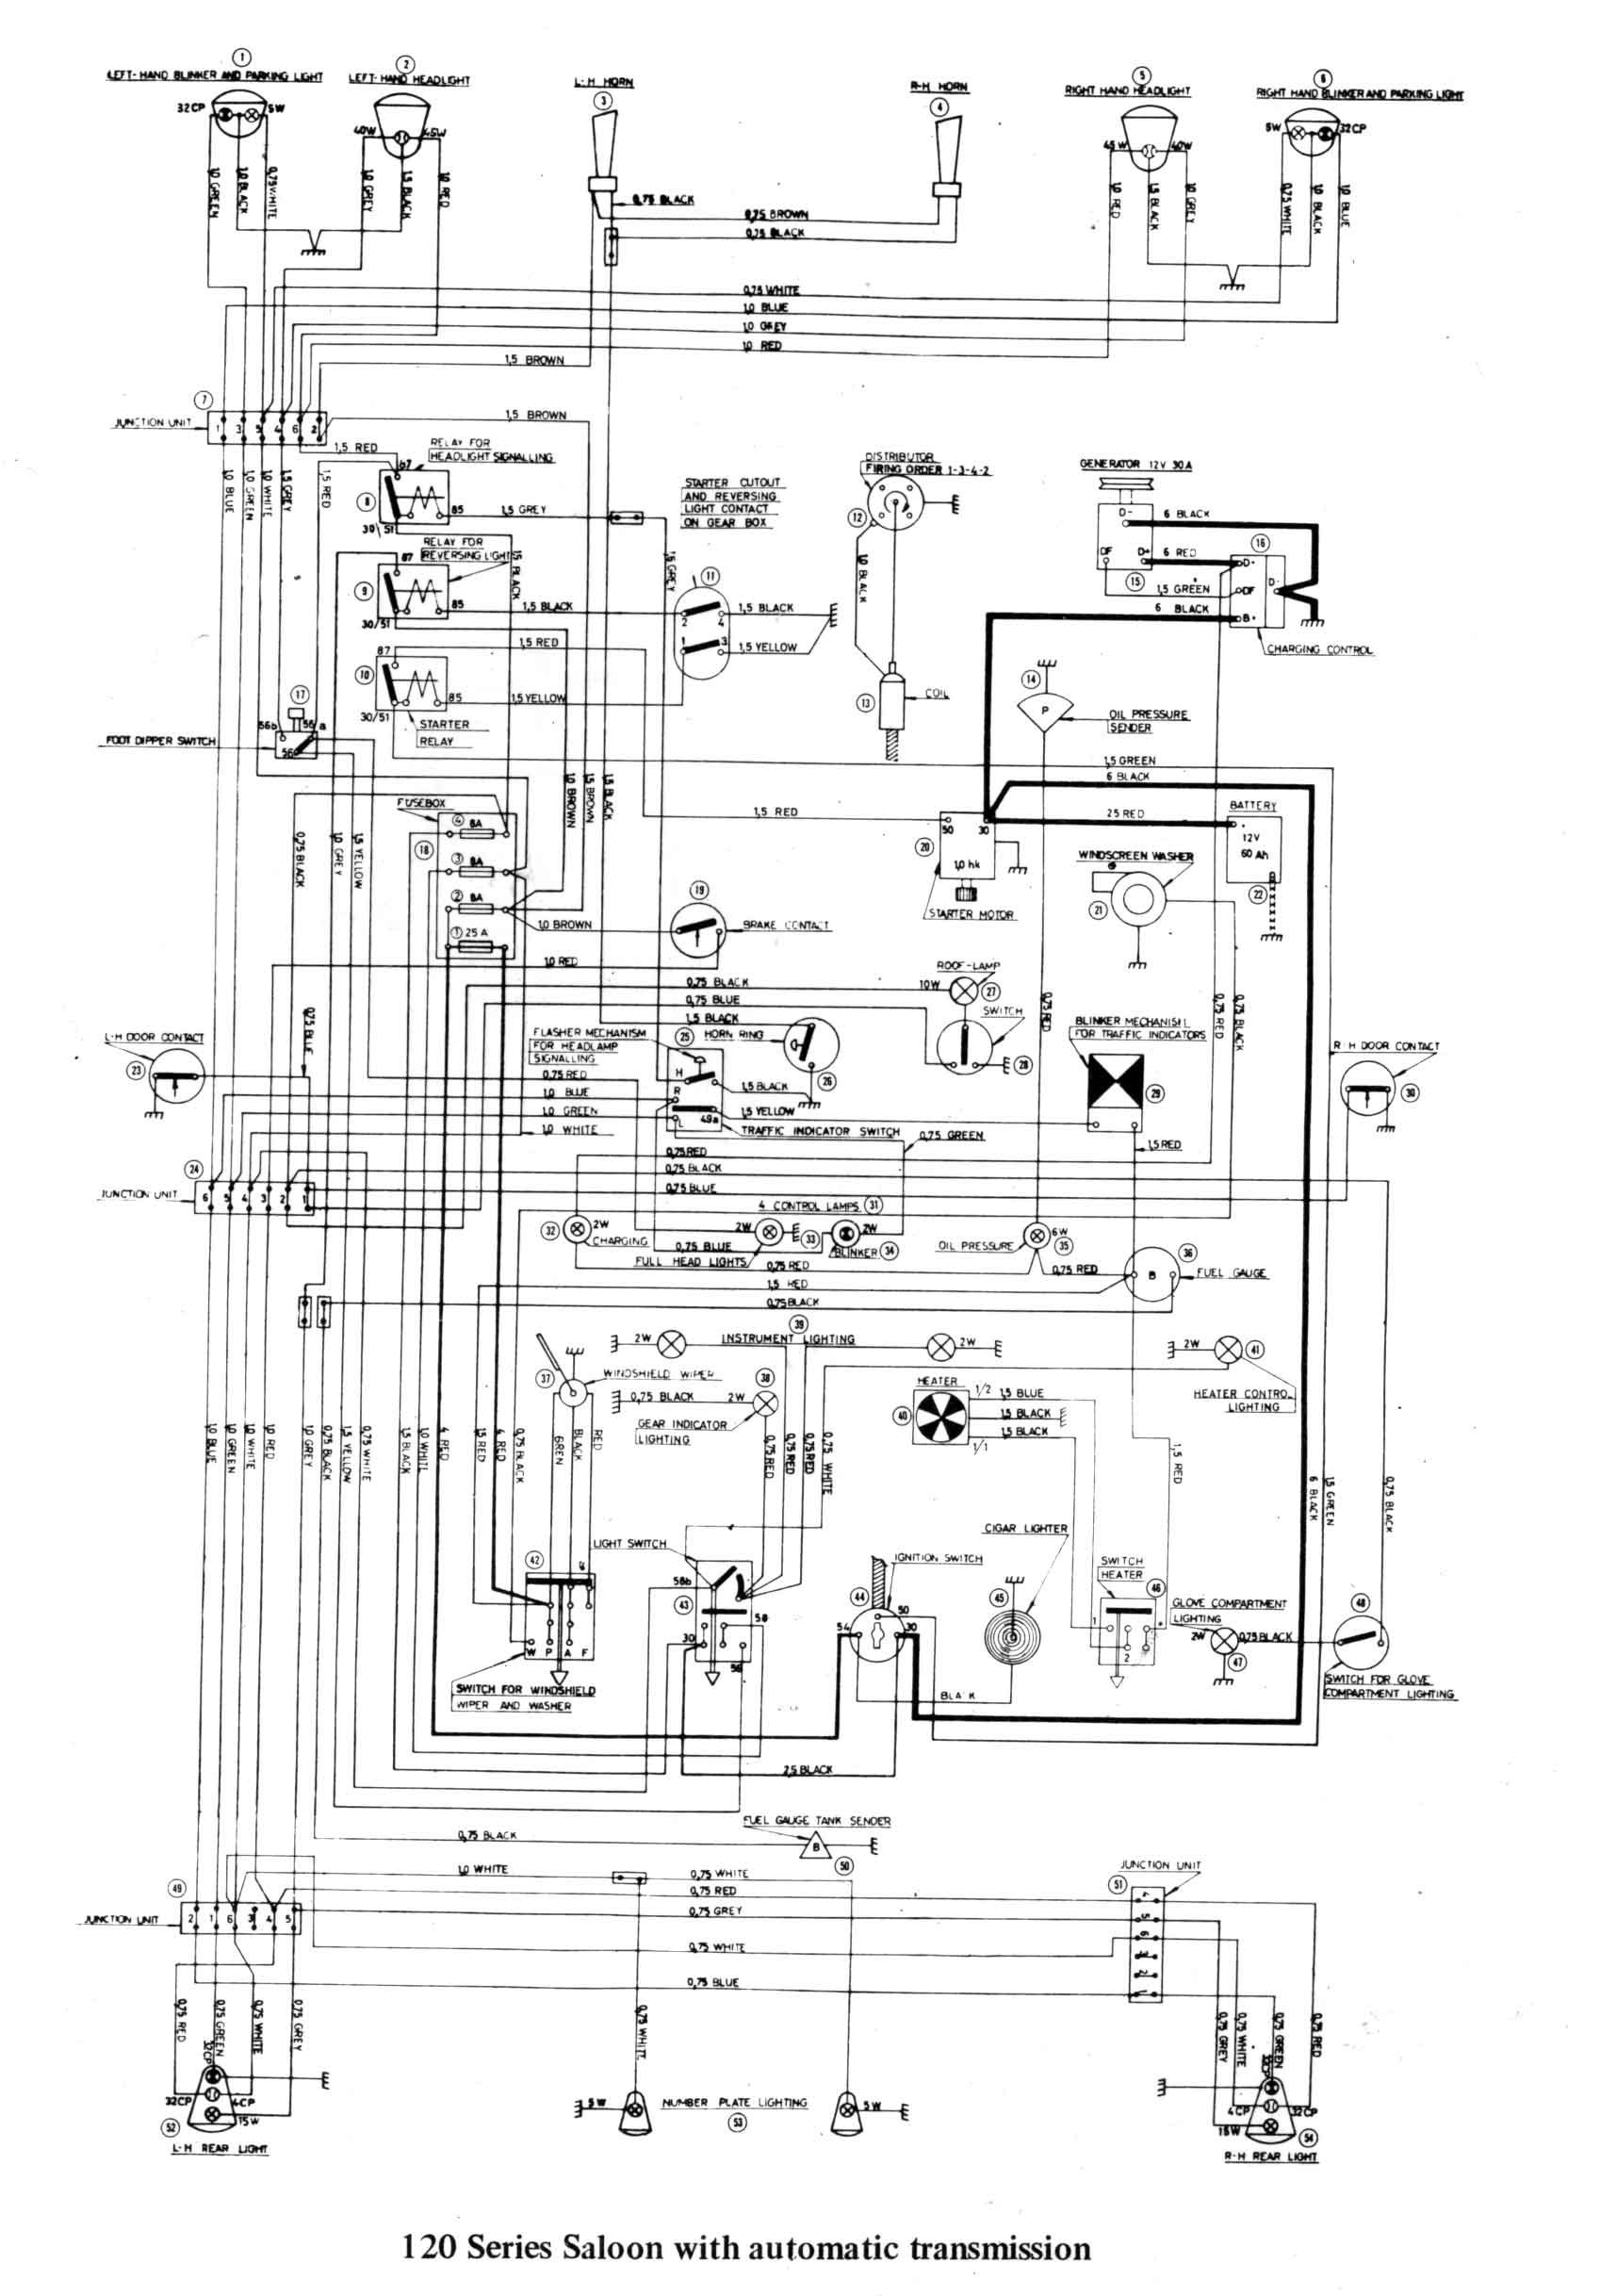 Bus Air Brake System Diagram Volvo Brake Schematics Wire Center • Of Bus Air Brake System Diagram Truck Air System Diagram Truck Air System Diagram Well Pump House